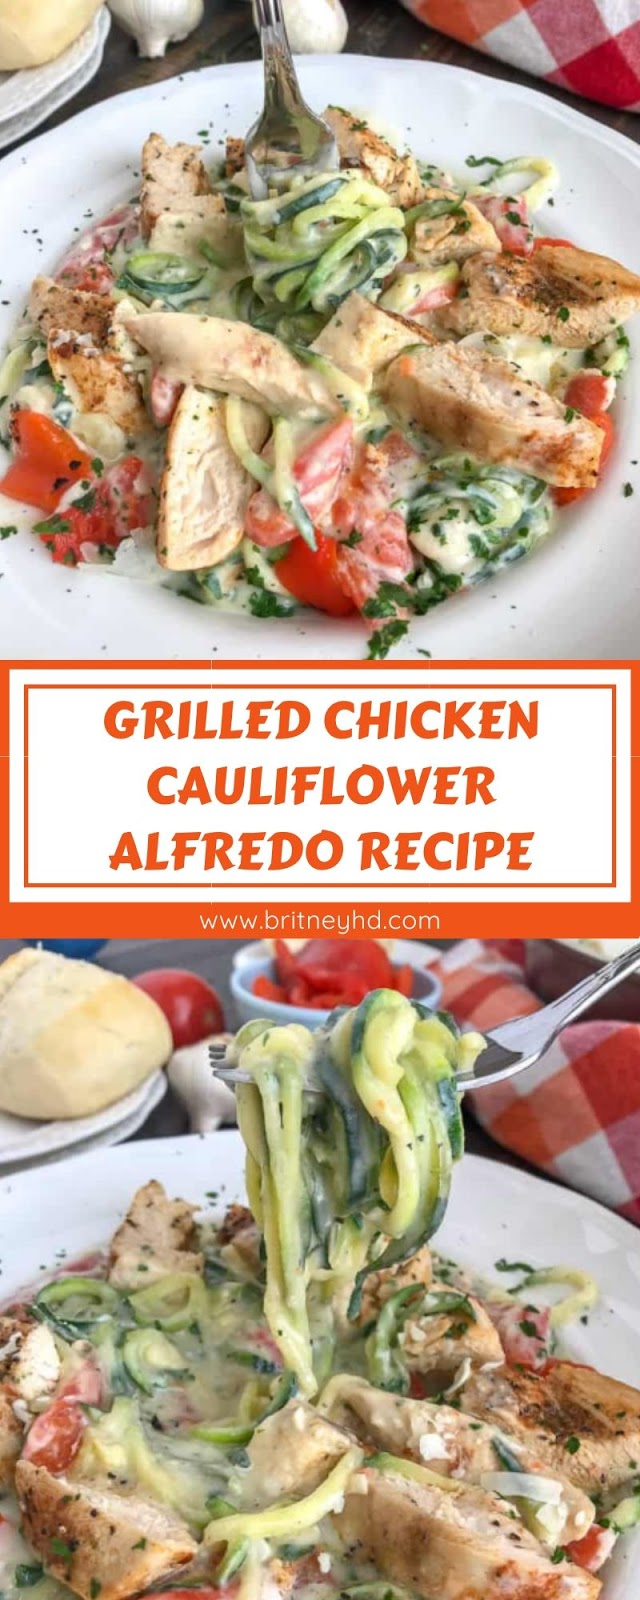 GRILLED CHICKEN CAULIFLOWER ALFREDO RECIPE